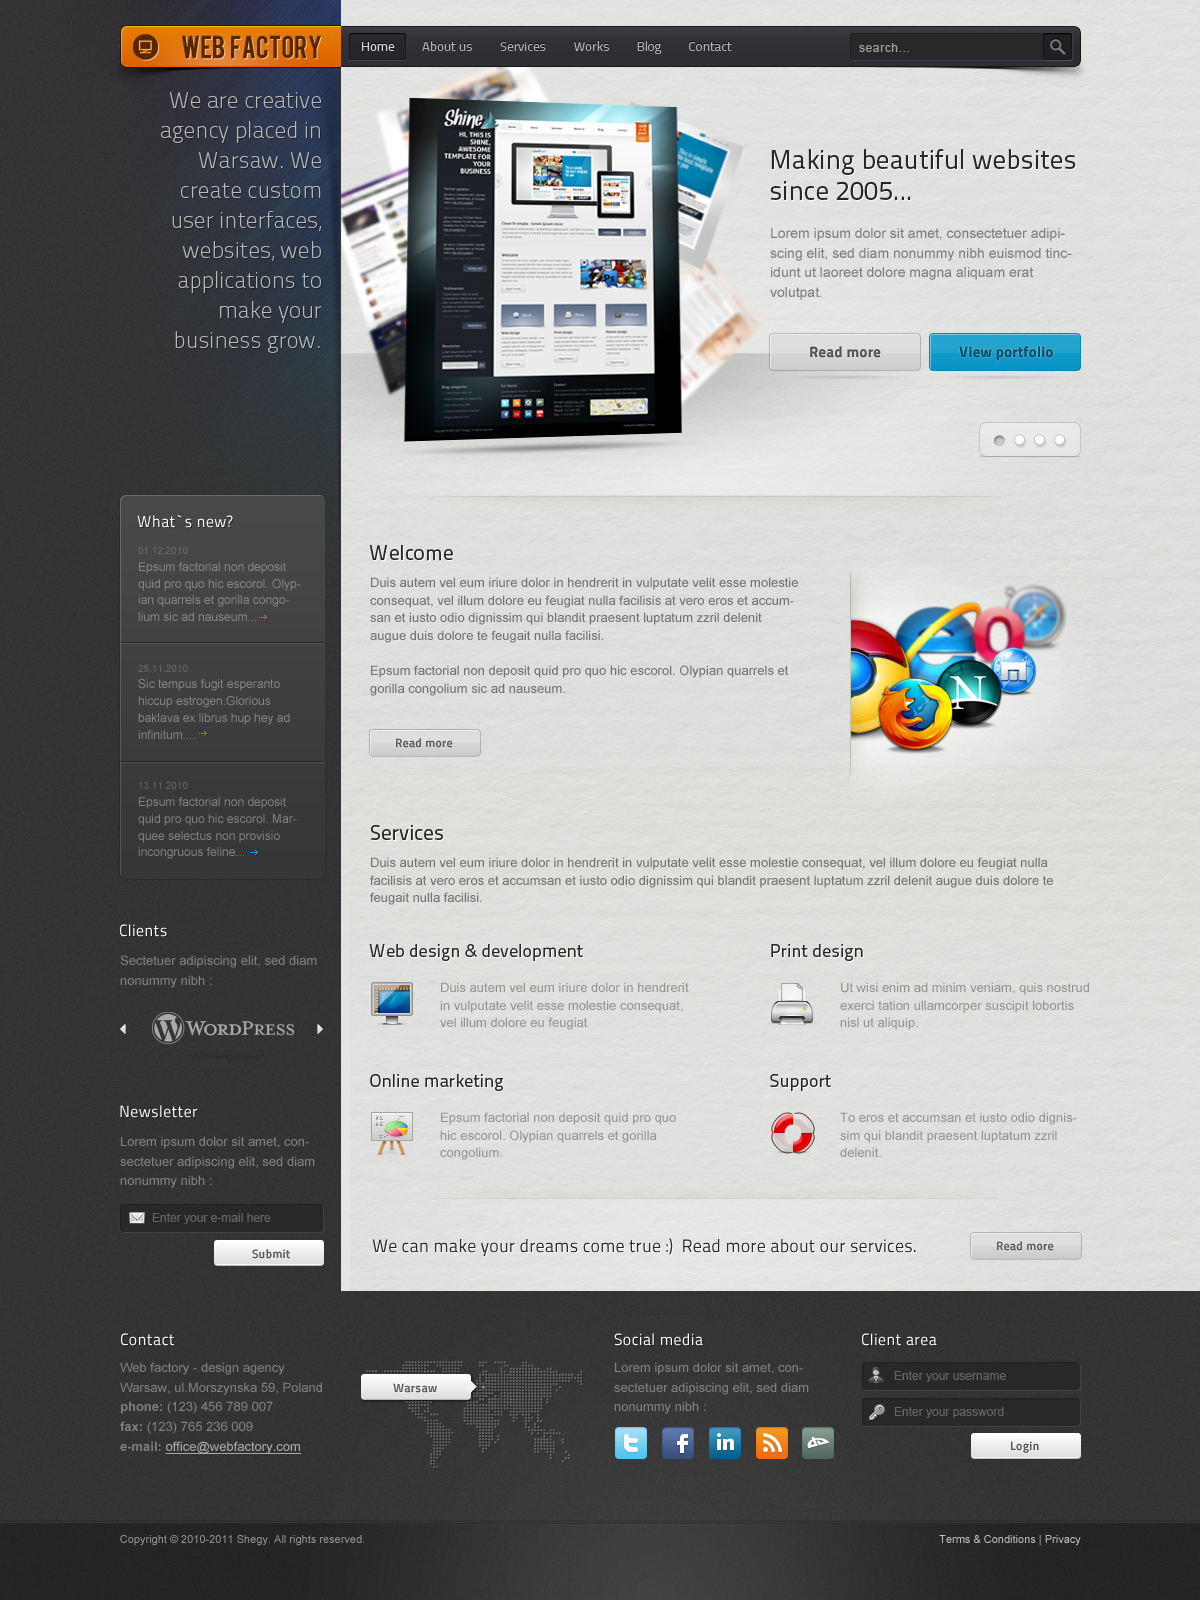 Web factory - Modern & Unique HTML Template by Shegy | ThemeForest